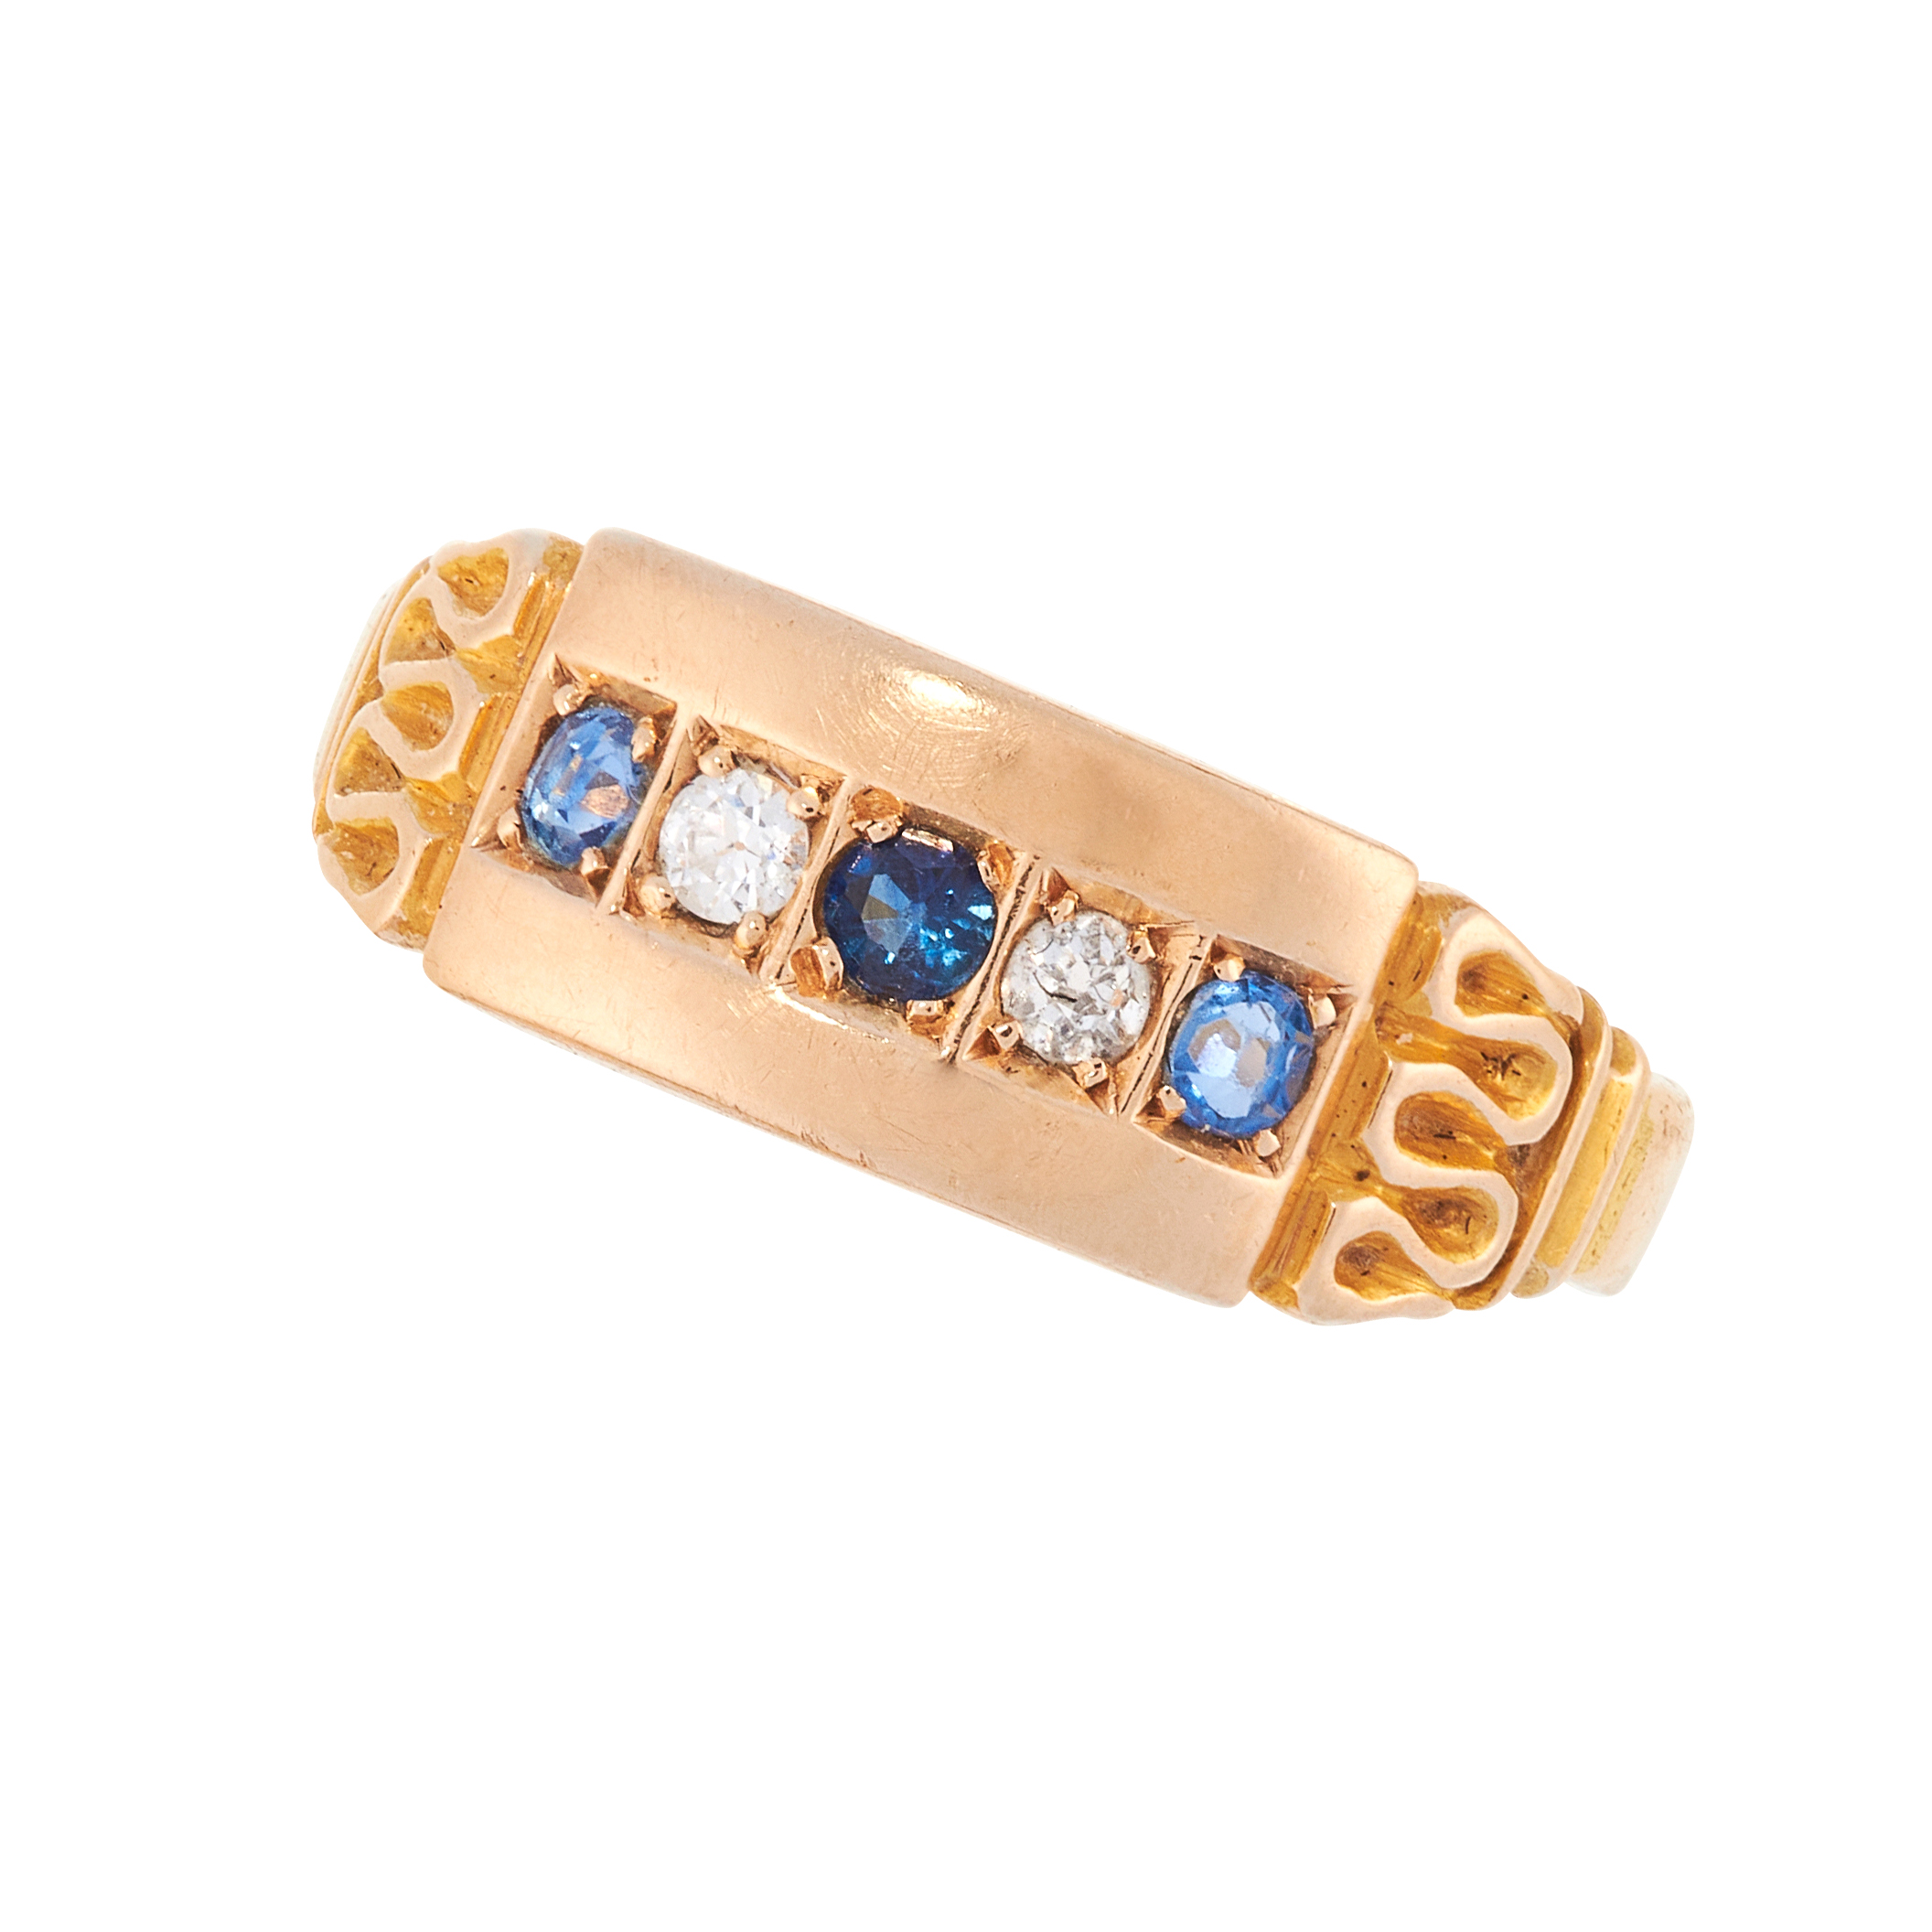 AN ANTIQUE VICTORIAN SAPPHIRE AND DIAMOND RING in 15ct yellow gold, the panel face is set with